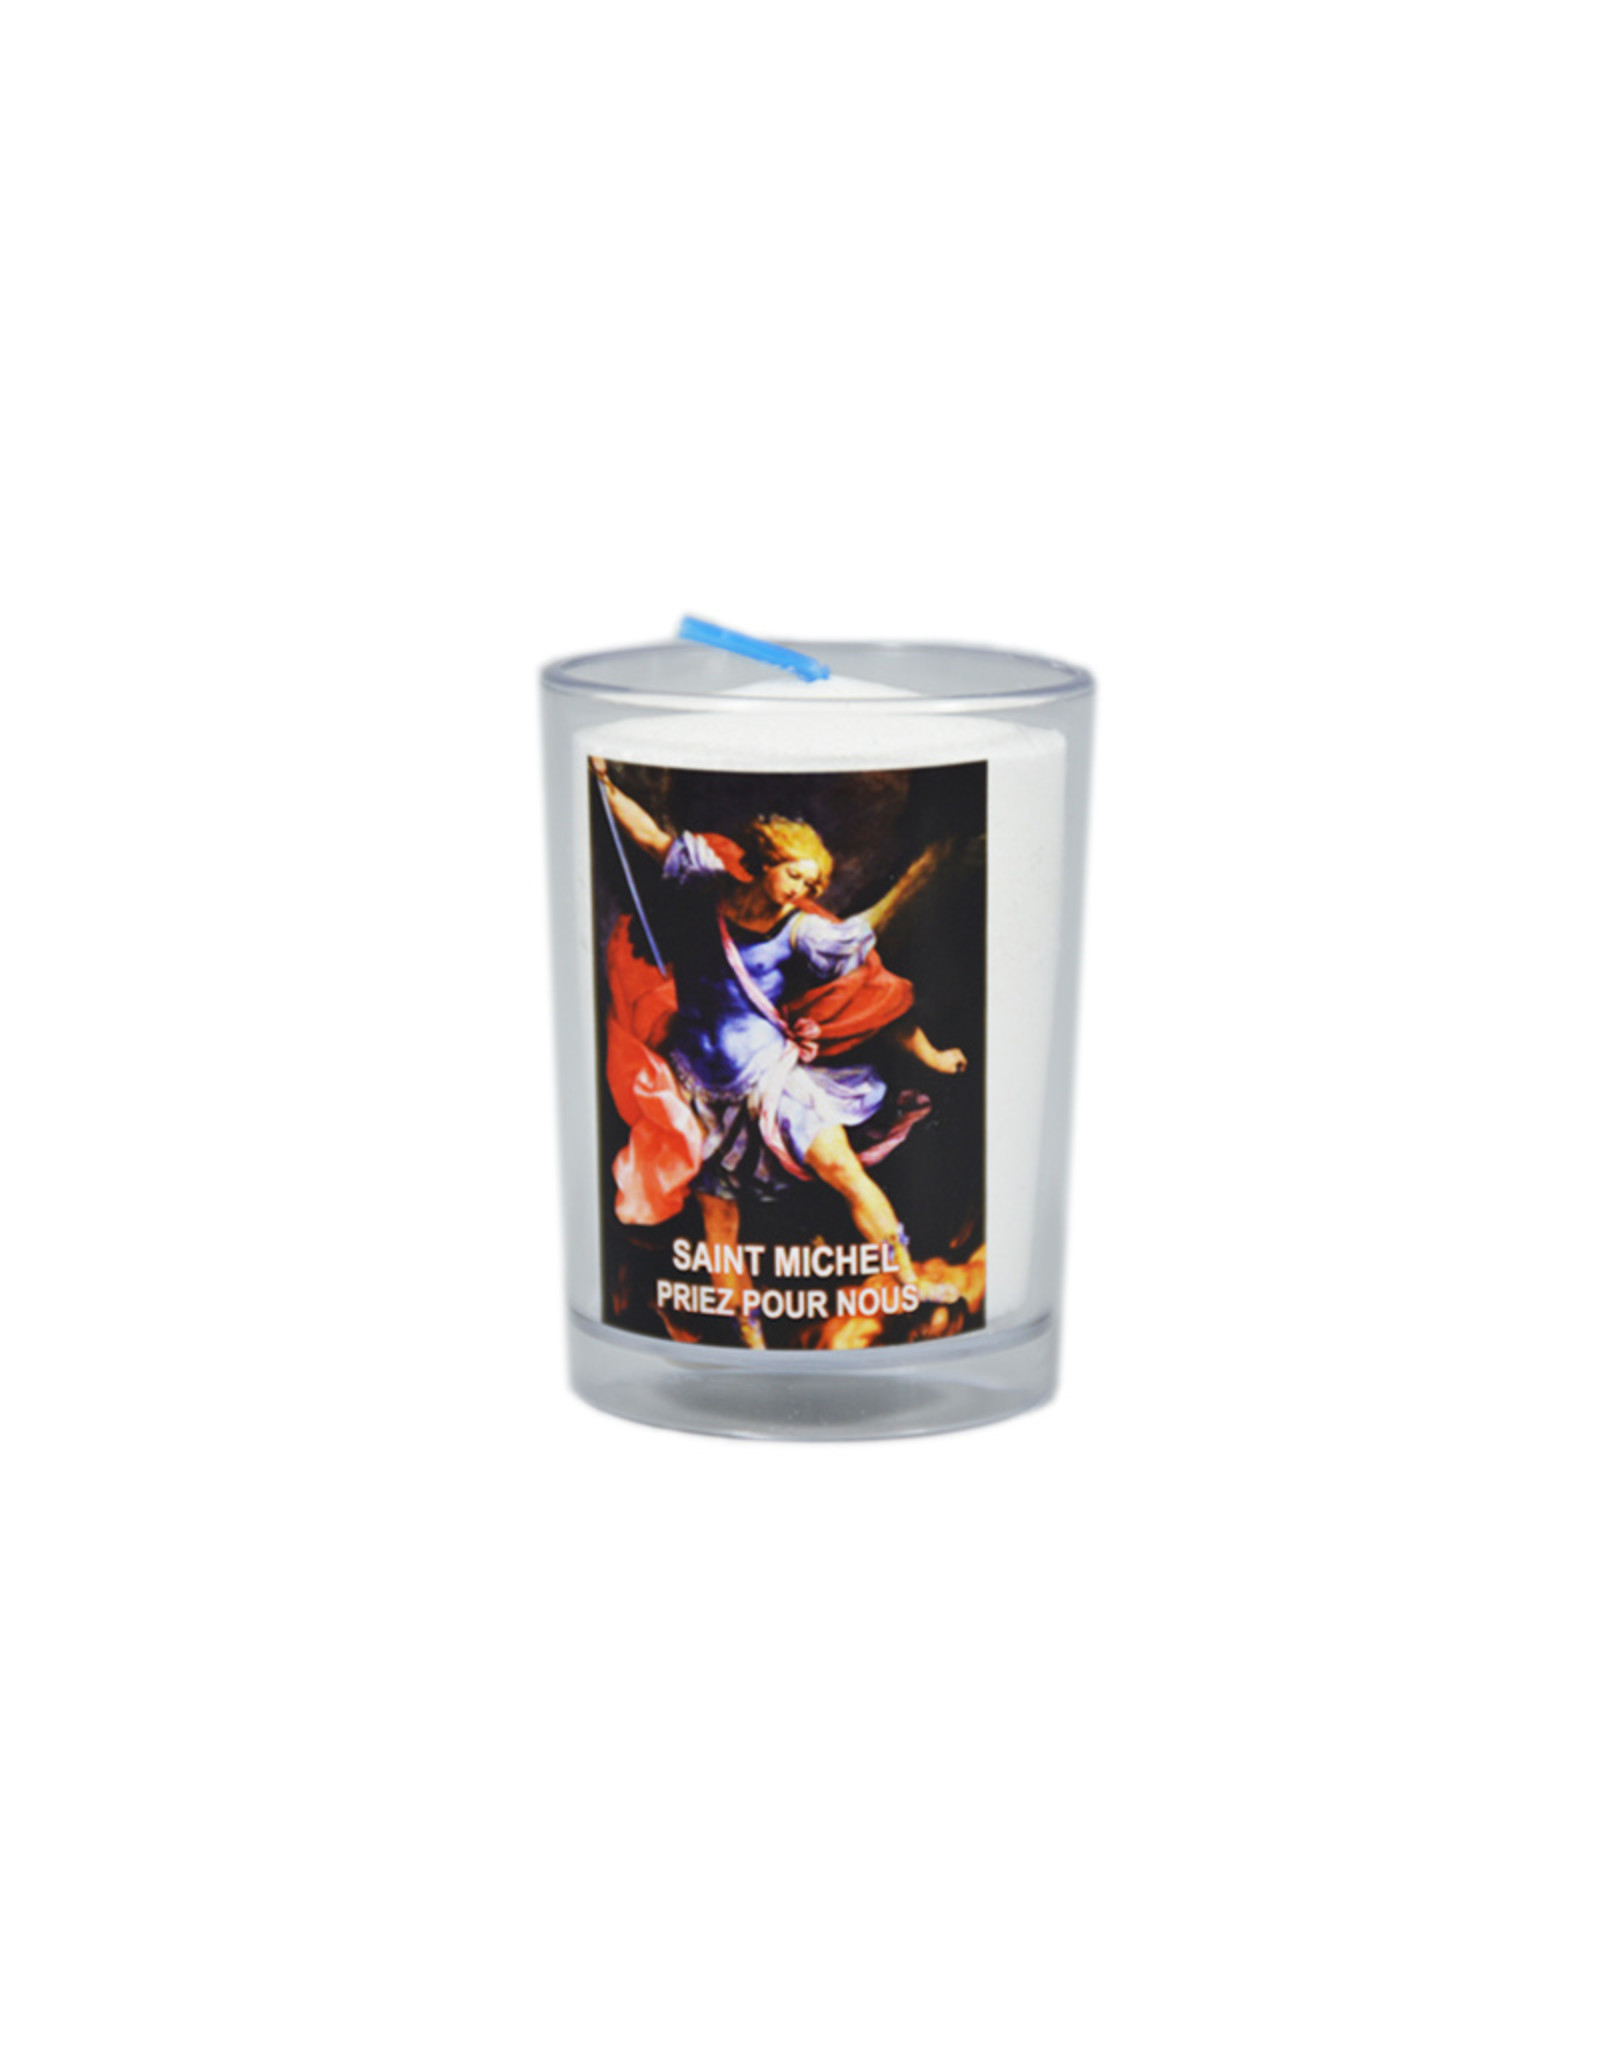 Chandelles Tradition / Tradition Candles Saint Michael votive candle (french)